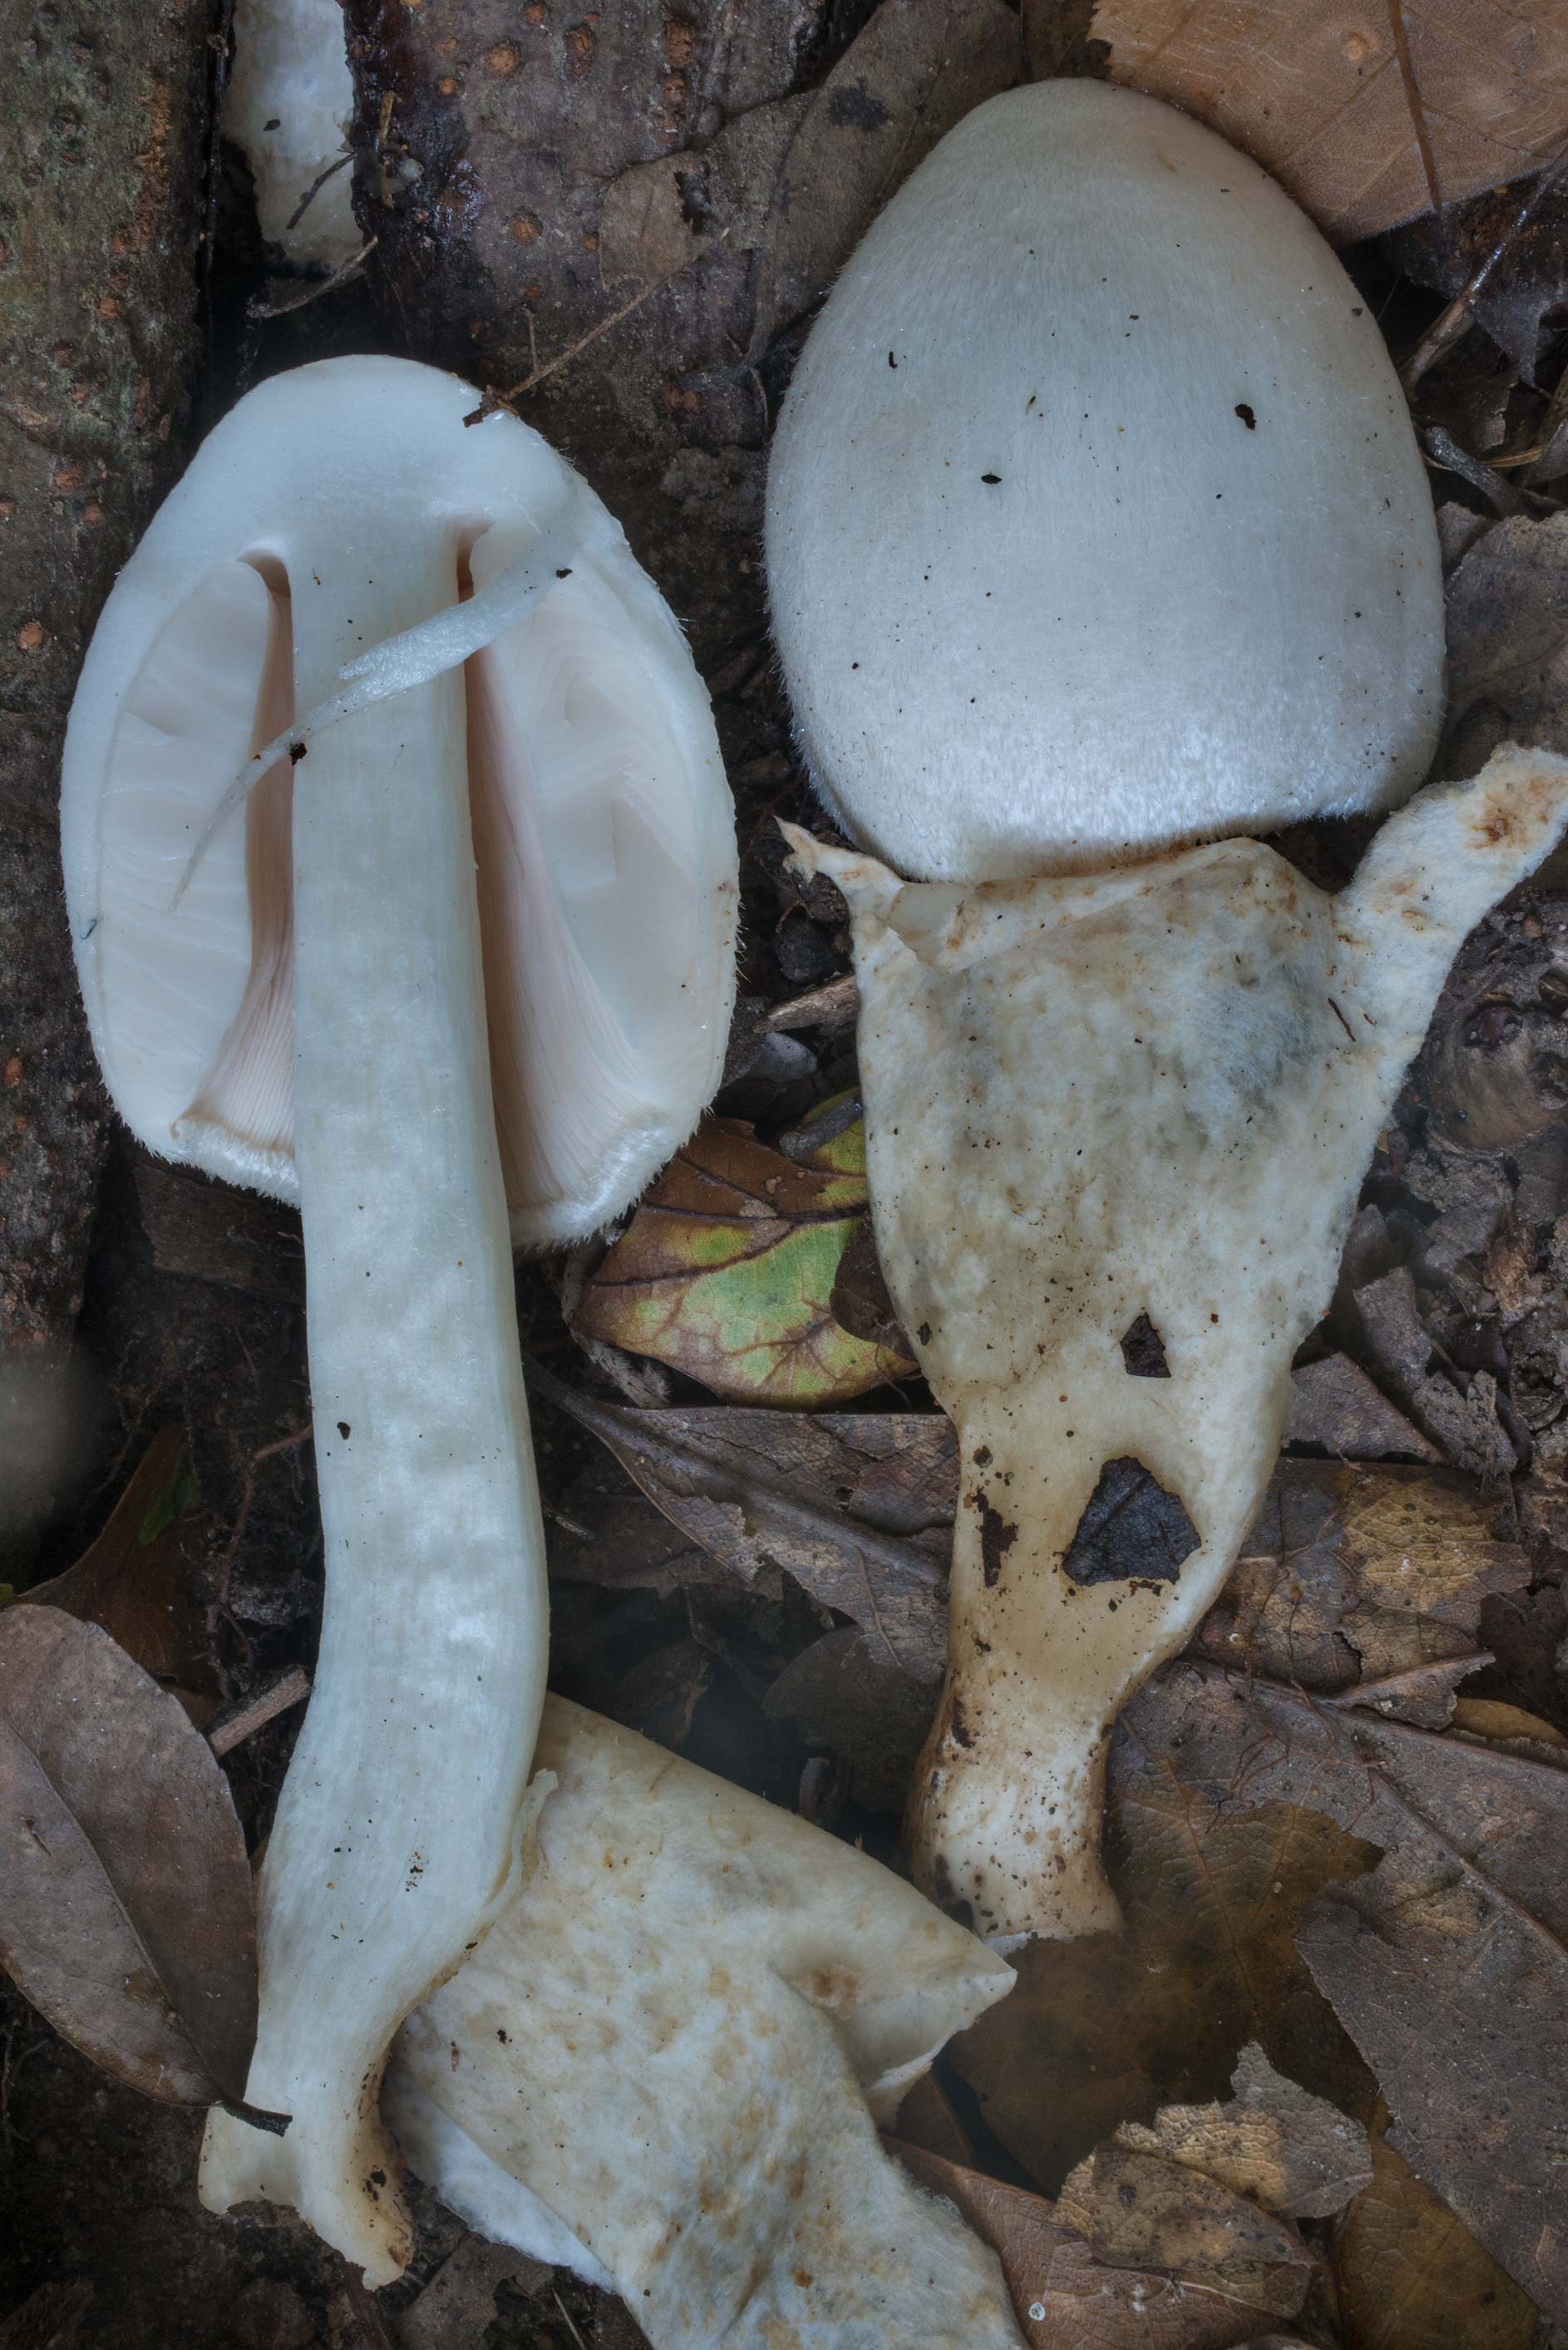 Dissected silky sheath mushroom (Volvariella...Creek Park. College Station, Texas